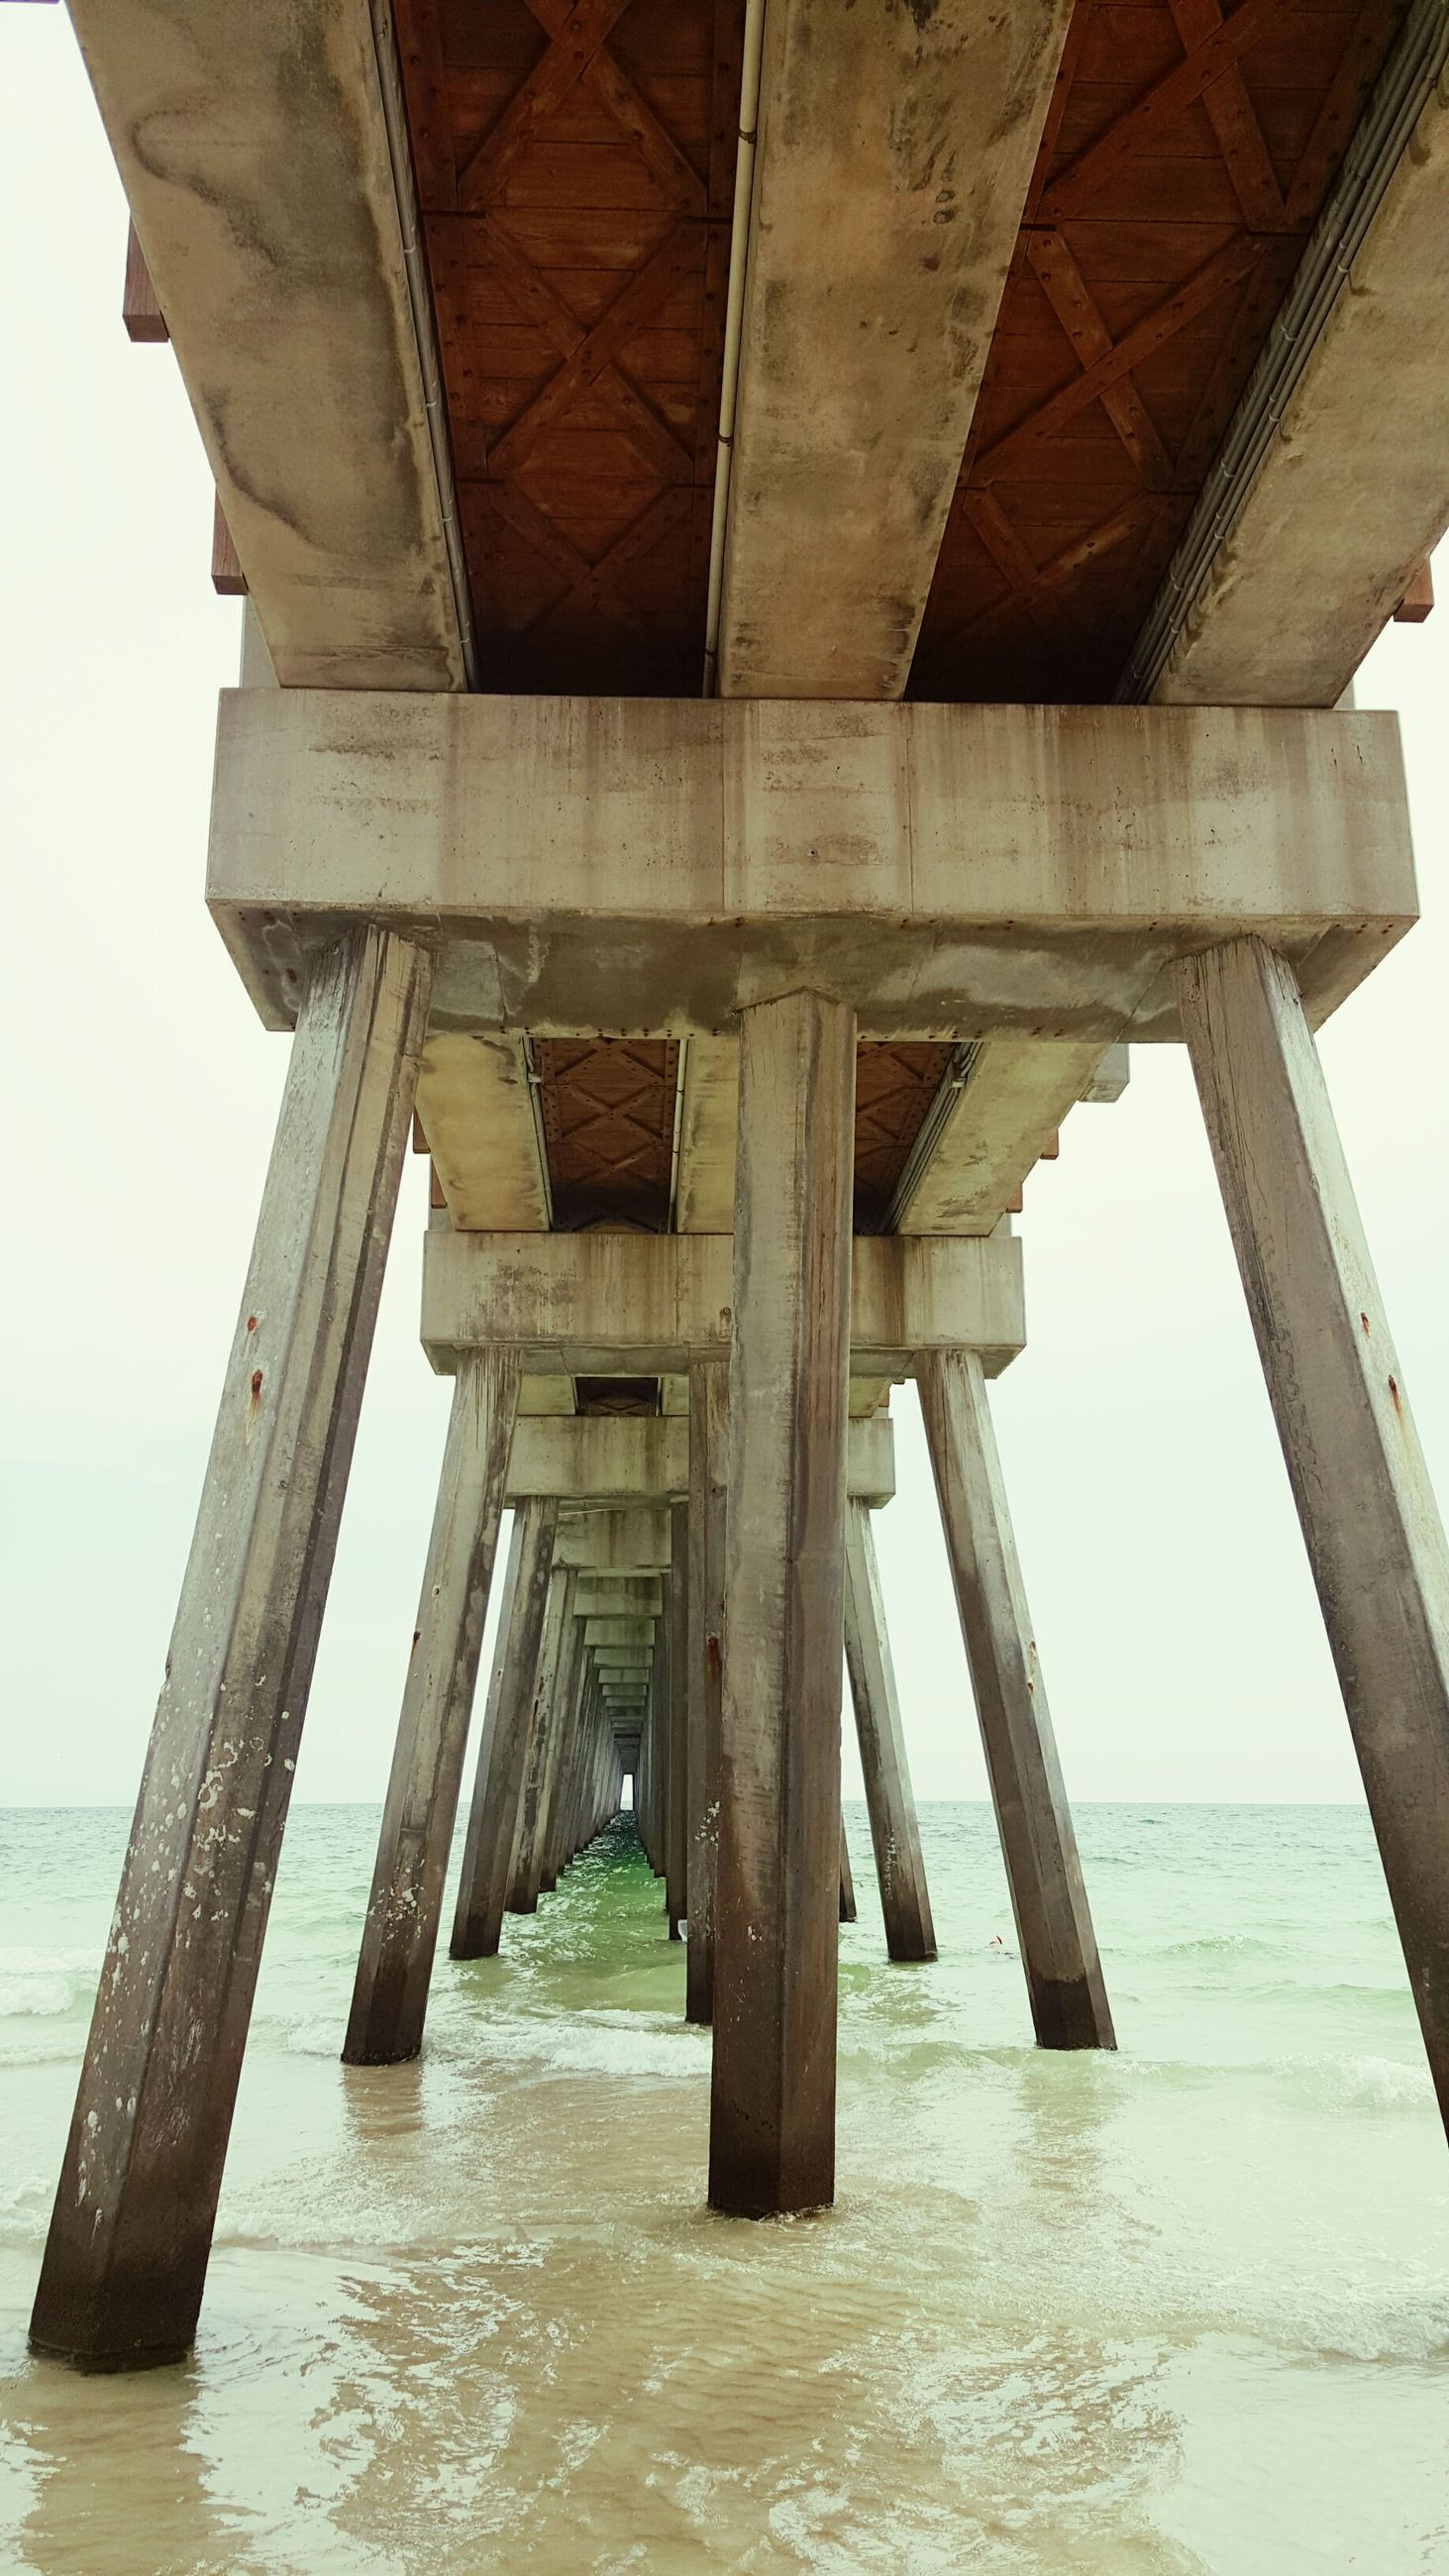 sea, water, built structure, architecture, architectural column, connection, column, pier, low angle view, support, bridge - man made structure, horizon over water, sky, engineering, bridge, tranquility, below, day, nature, clear sky